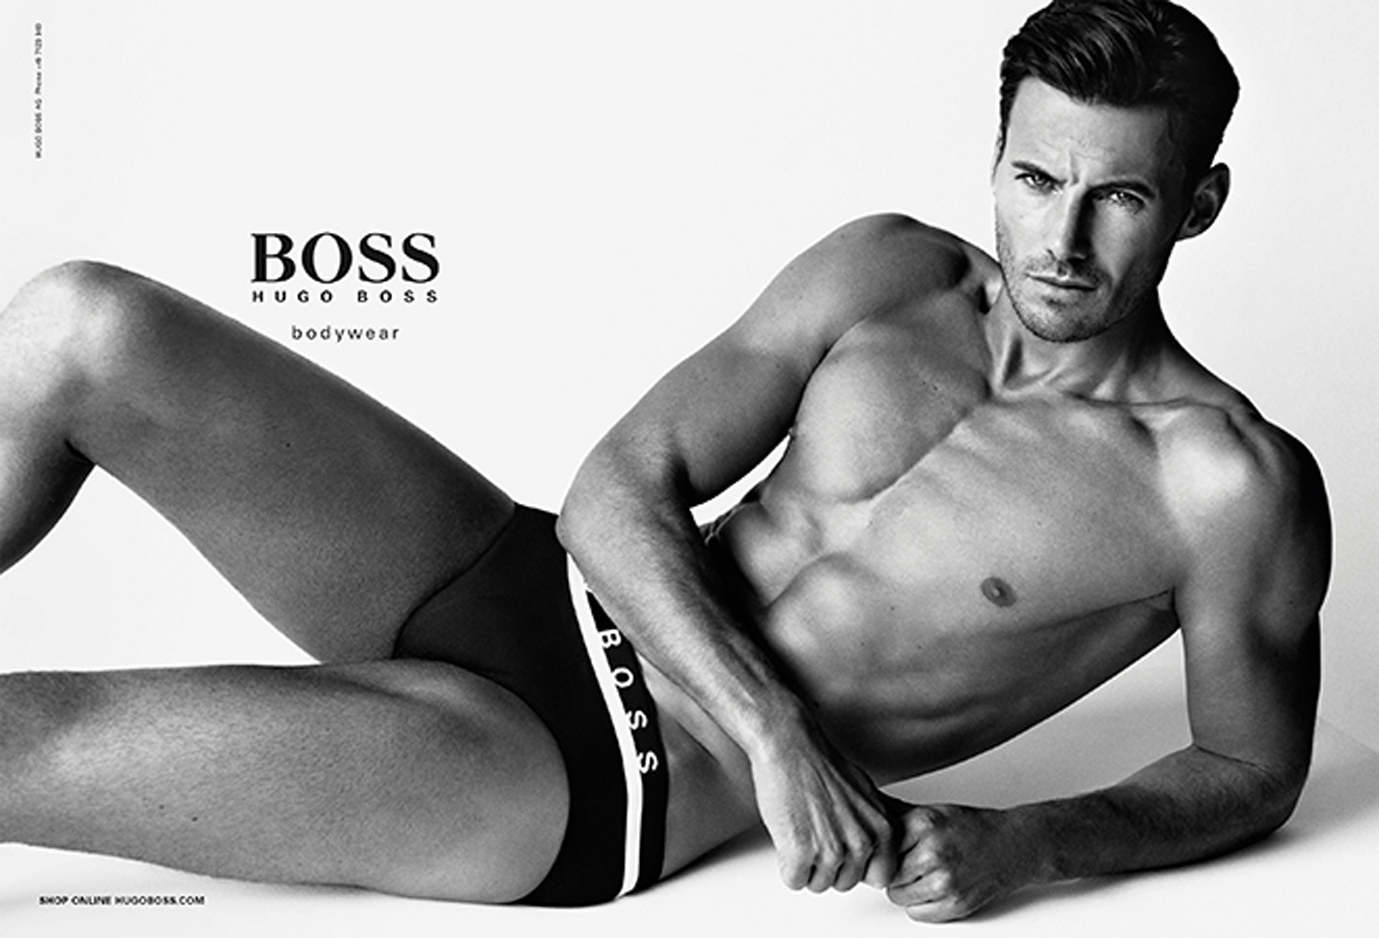 Hugo Boss Underwear S/S 2014 Ph: Alasdair McLellan Styling: Alister Mackie